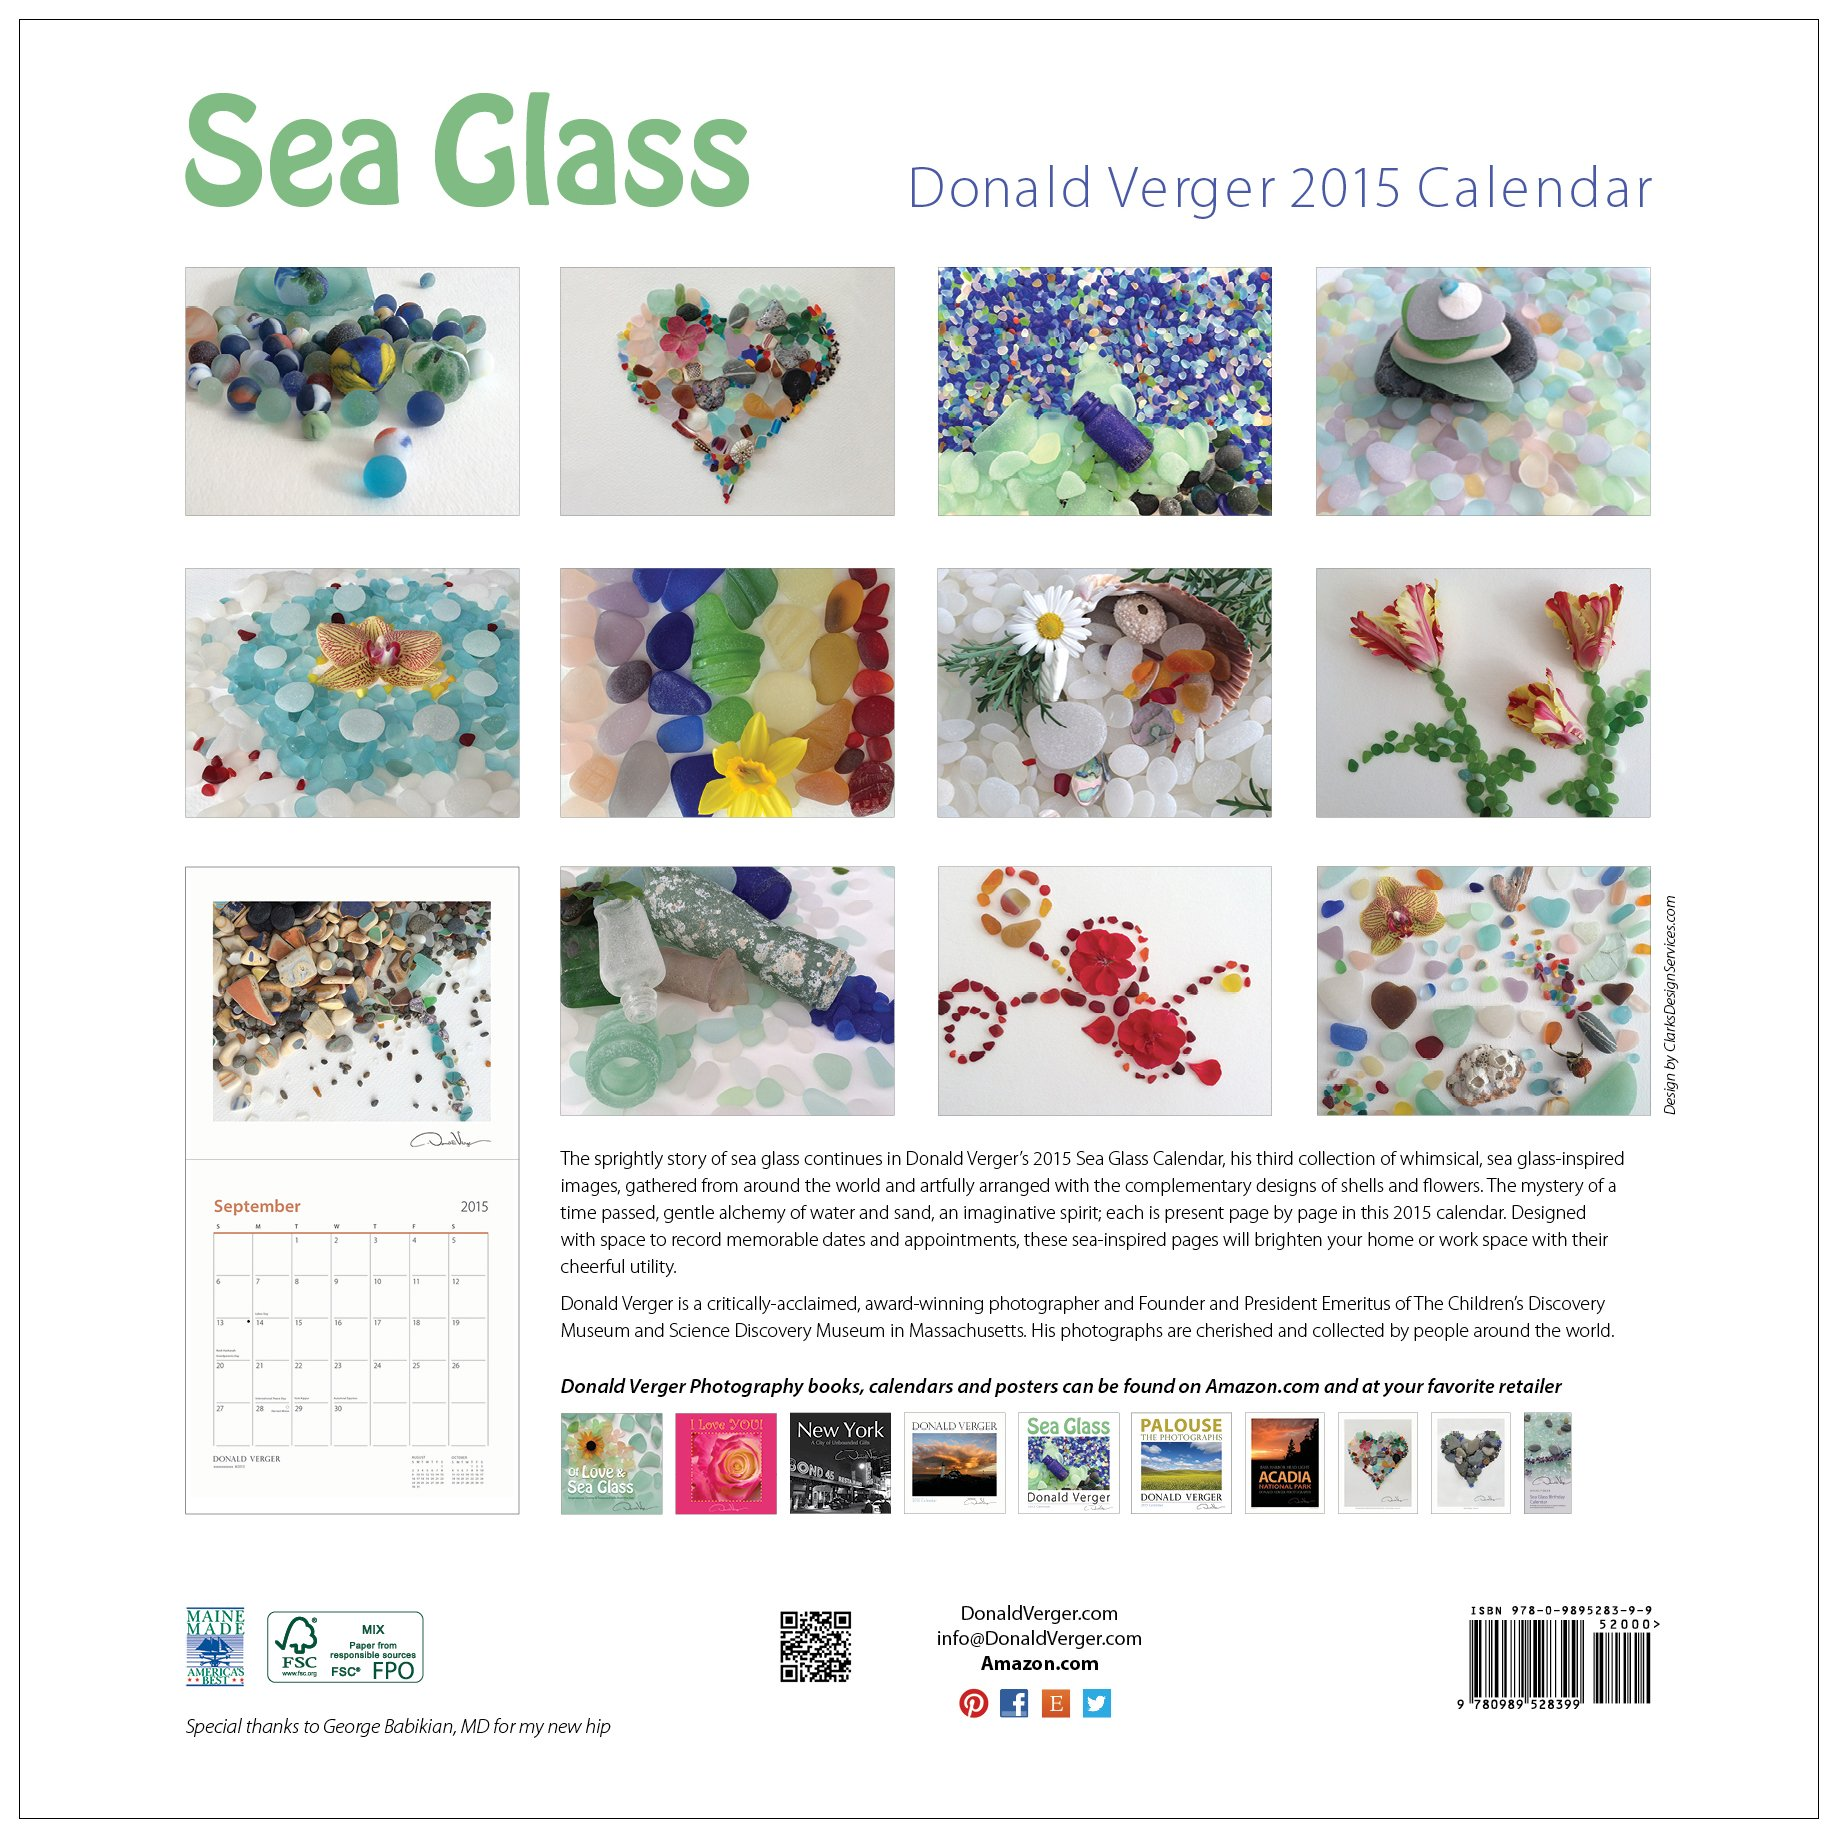 2015 SEA GLASS Fine Art Nature Wall Calendar 12X12 - A Unique Great Birthday, Anniversary, Valentines Day, Mothers Day, Wedding & Best Christmas Gift by Donald Verger Photography (Image #2)